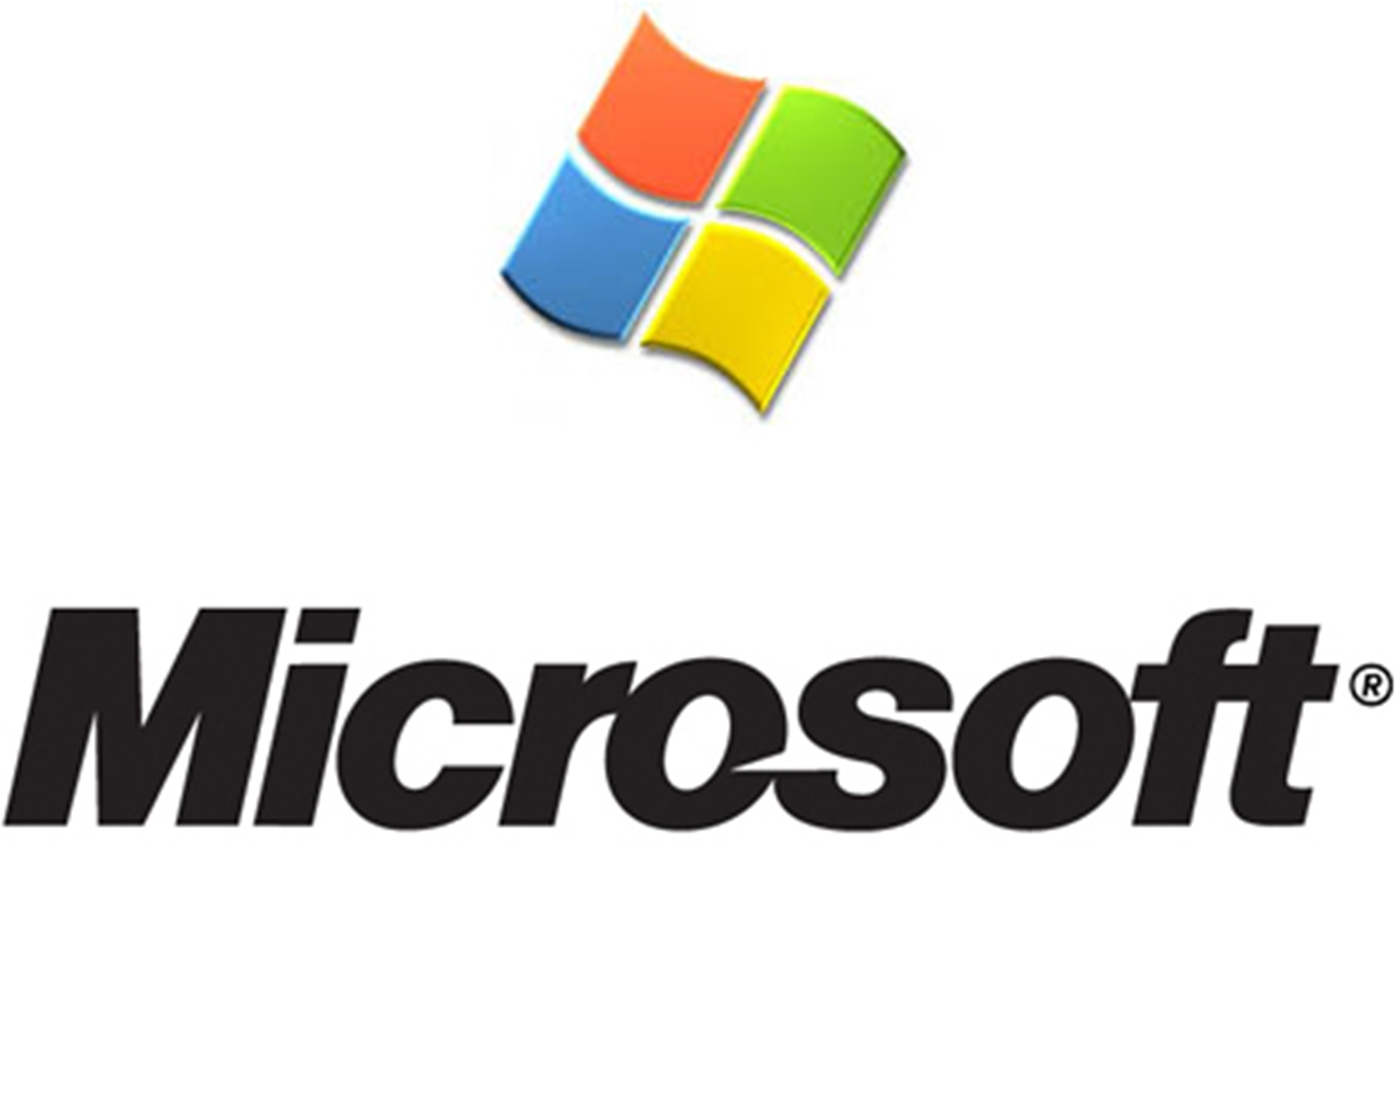 MicrosoftLogo company logo pictures with name business brand marketing